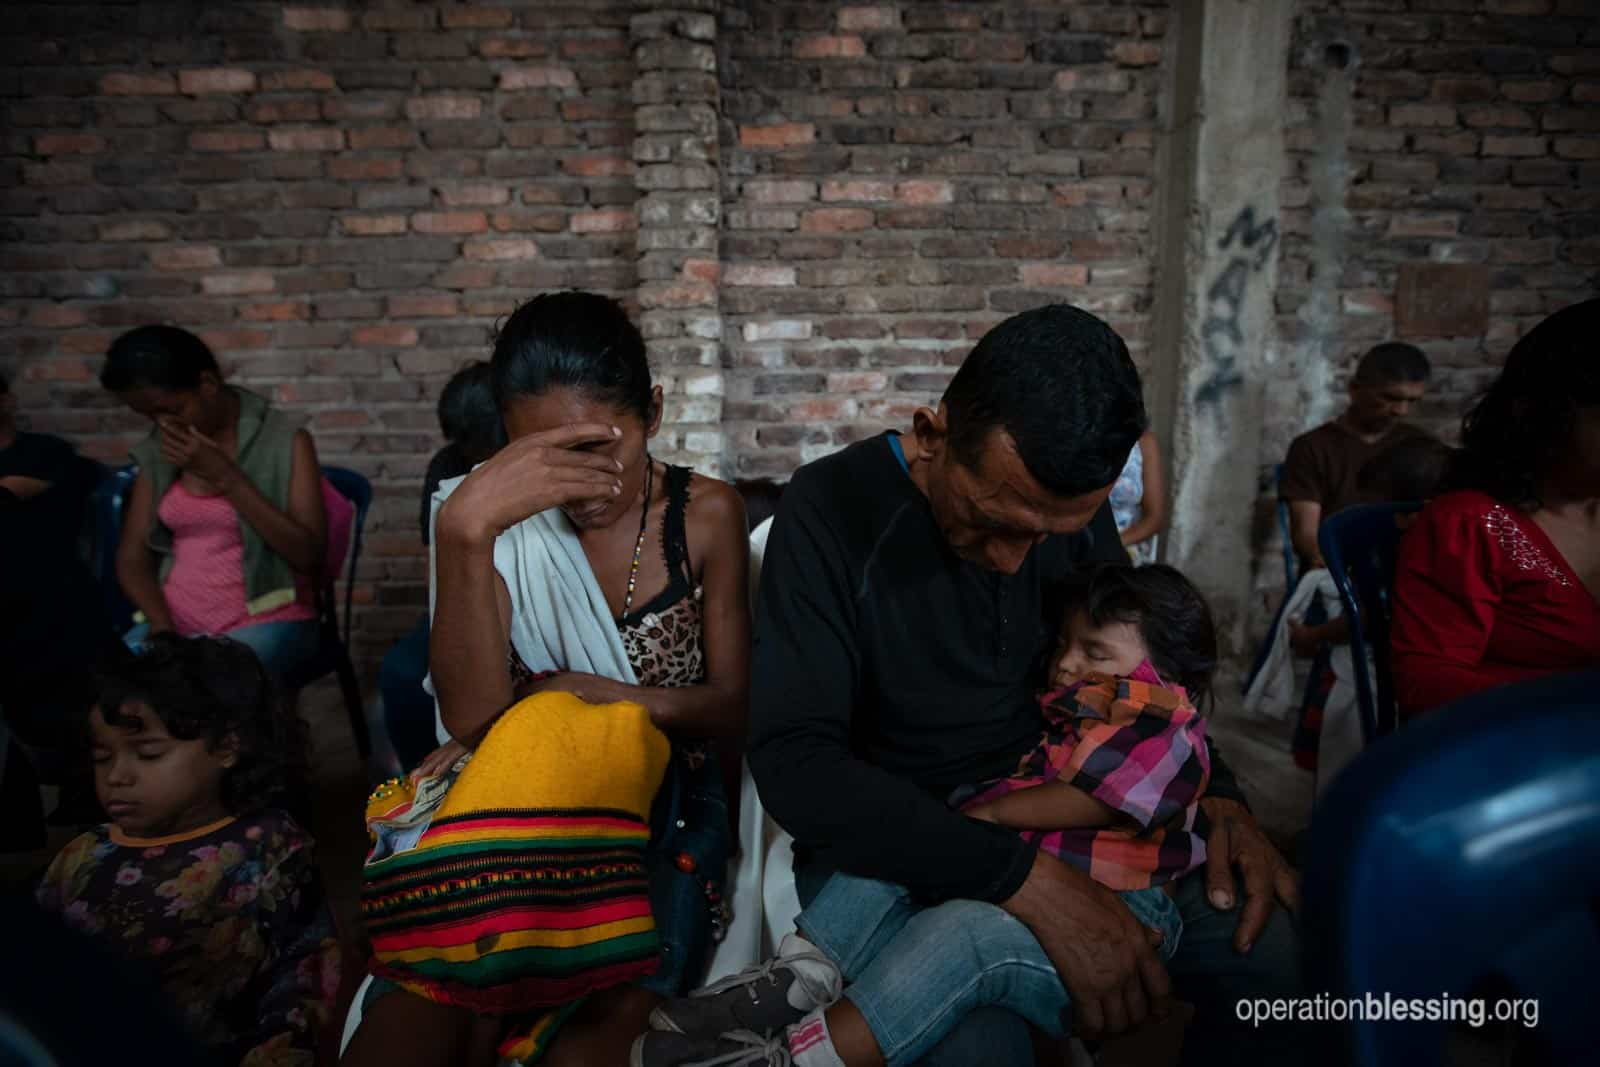 Desperate Venezuelan refugees look exhausted as they hold their child.